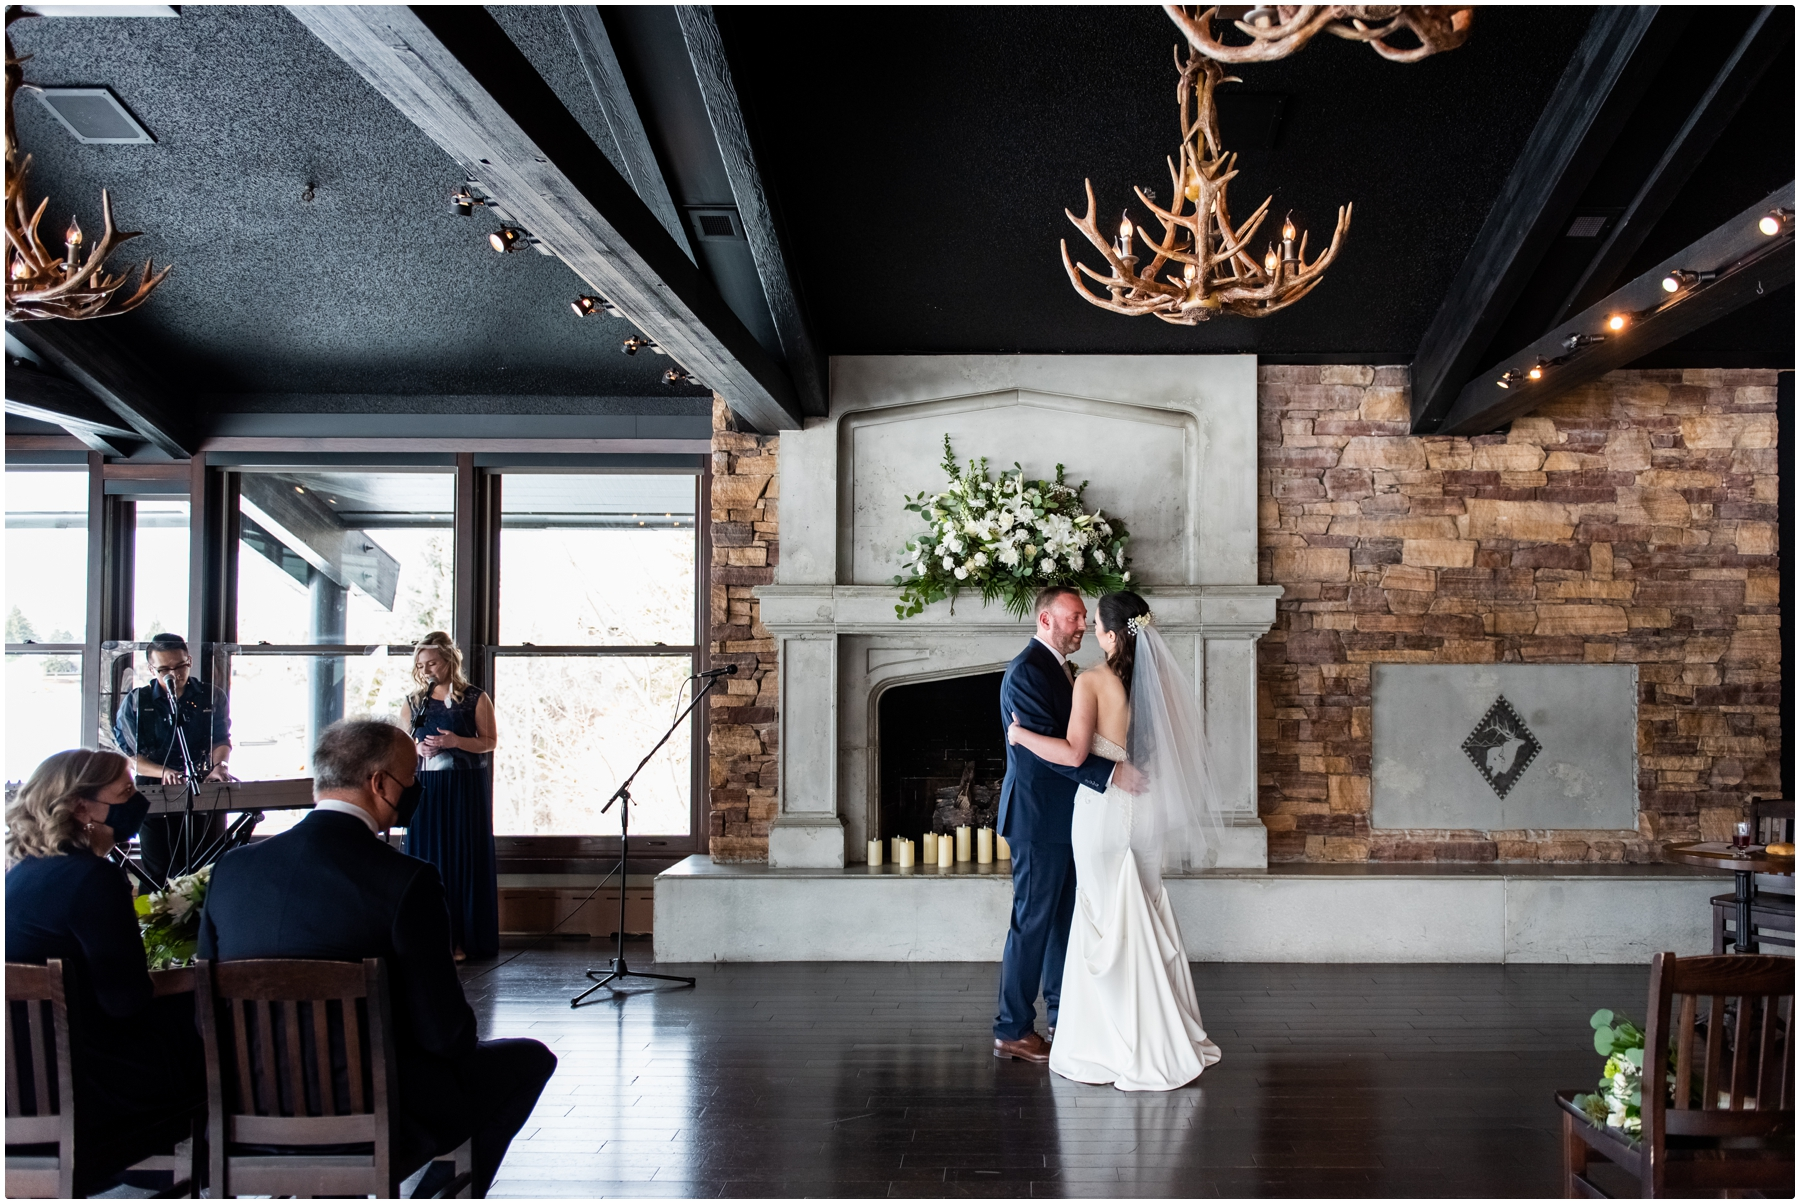 Calgary Wedding Photography - The Lake House